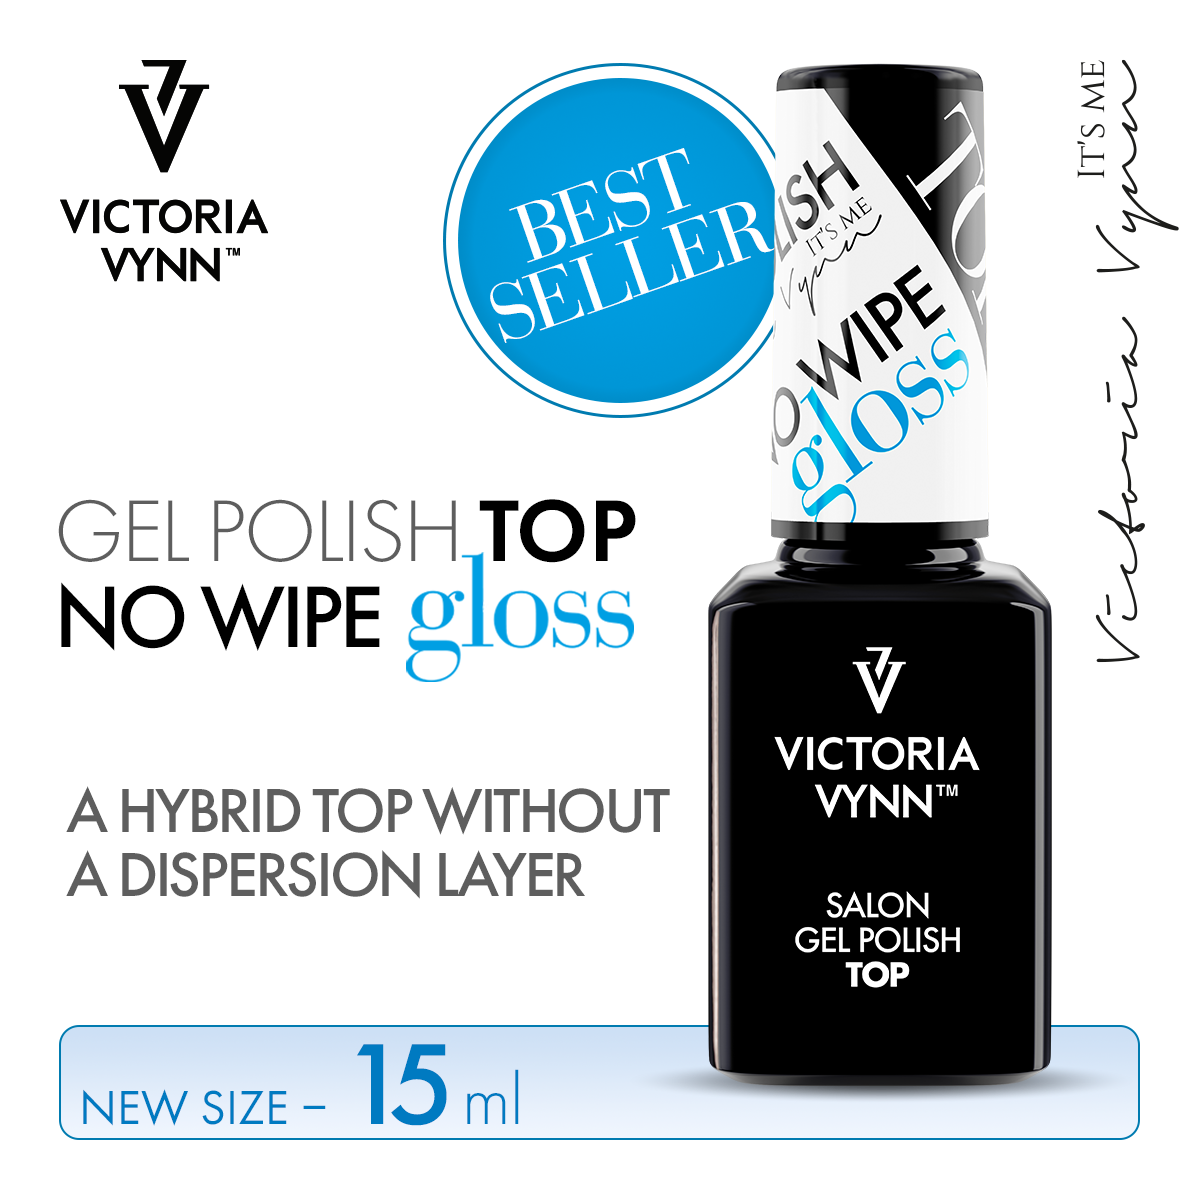 Top No Wipe Gloss Victoria Vynn 15ml